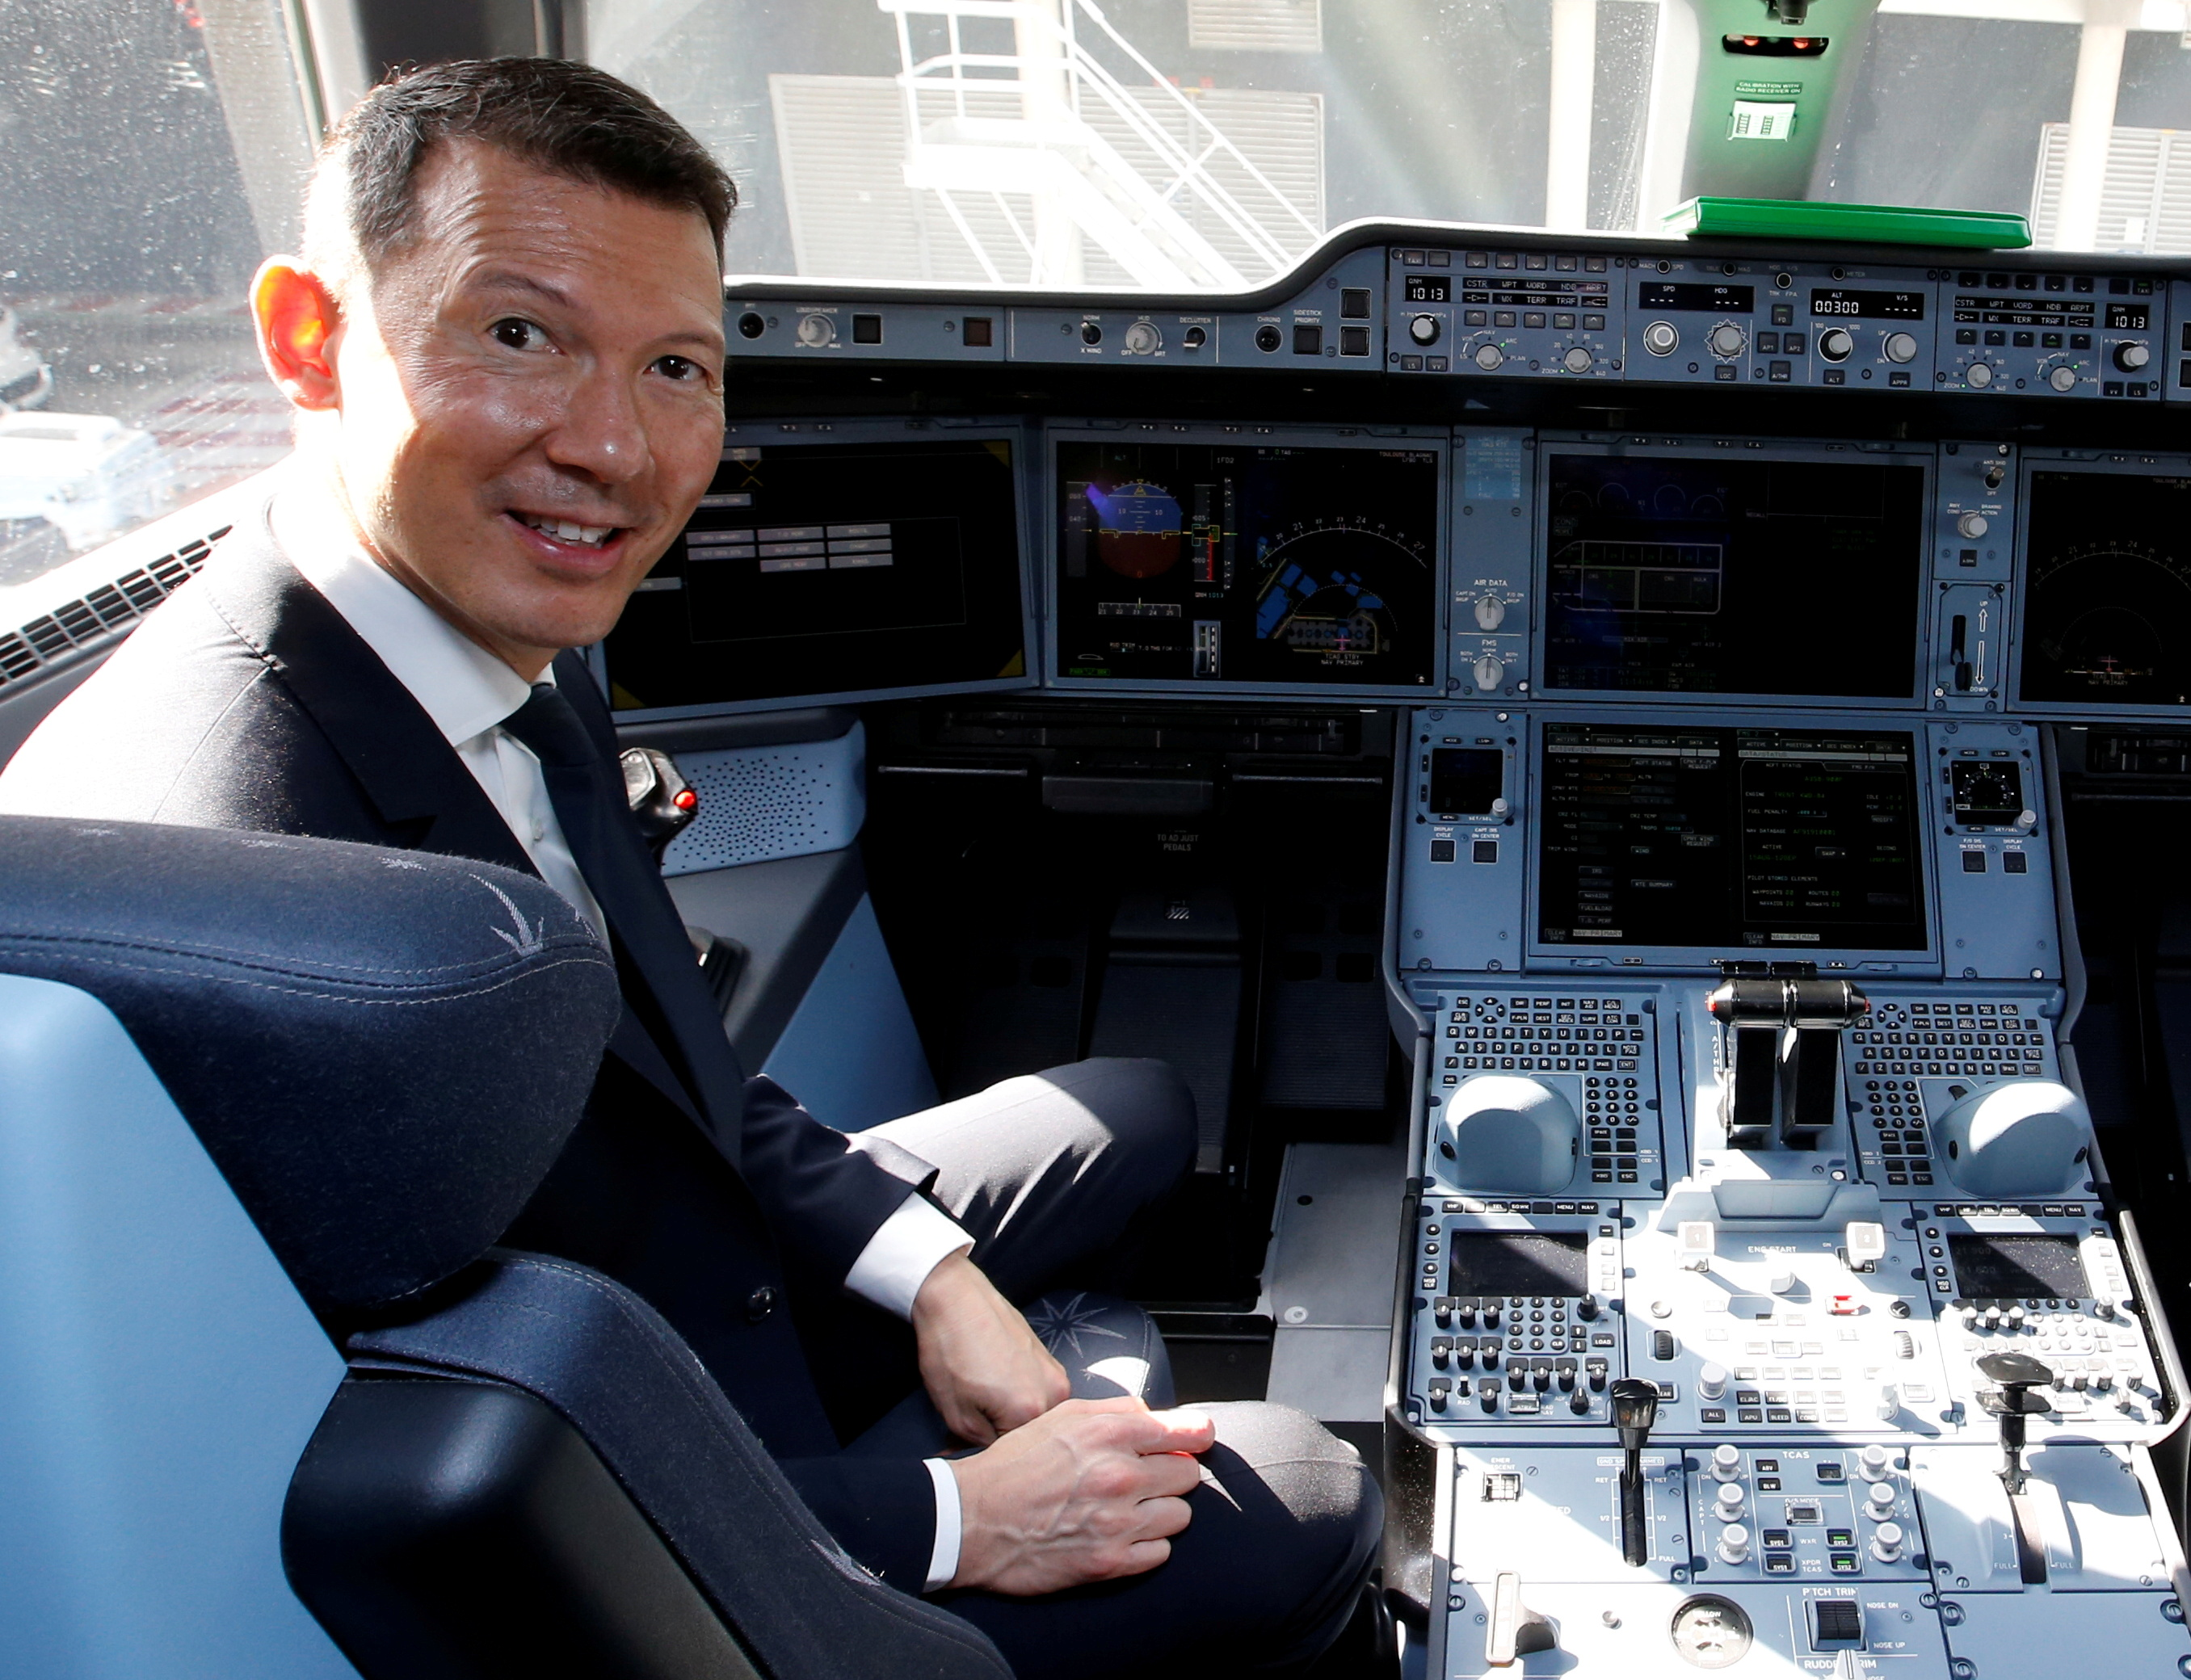 Benjamin Smith, Chief Executive of Air France-KLM, poses inside Air France's first Airbus A350 during a ceremony at the aircraft builder's headquarters in Colomiers near Toulouse, France, September 27, 2019. REUTERS/Regis Duvignau